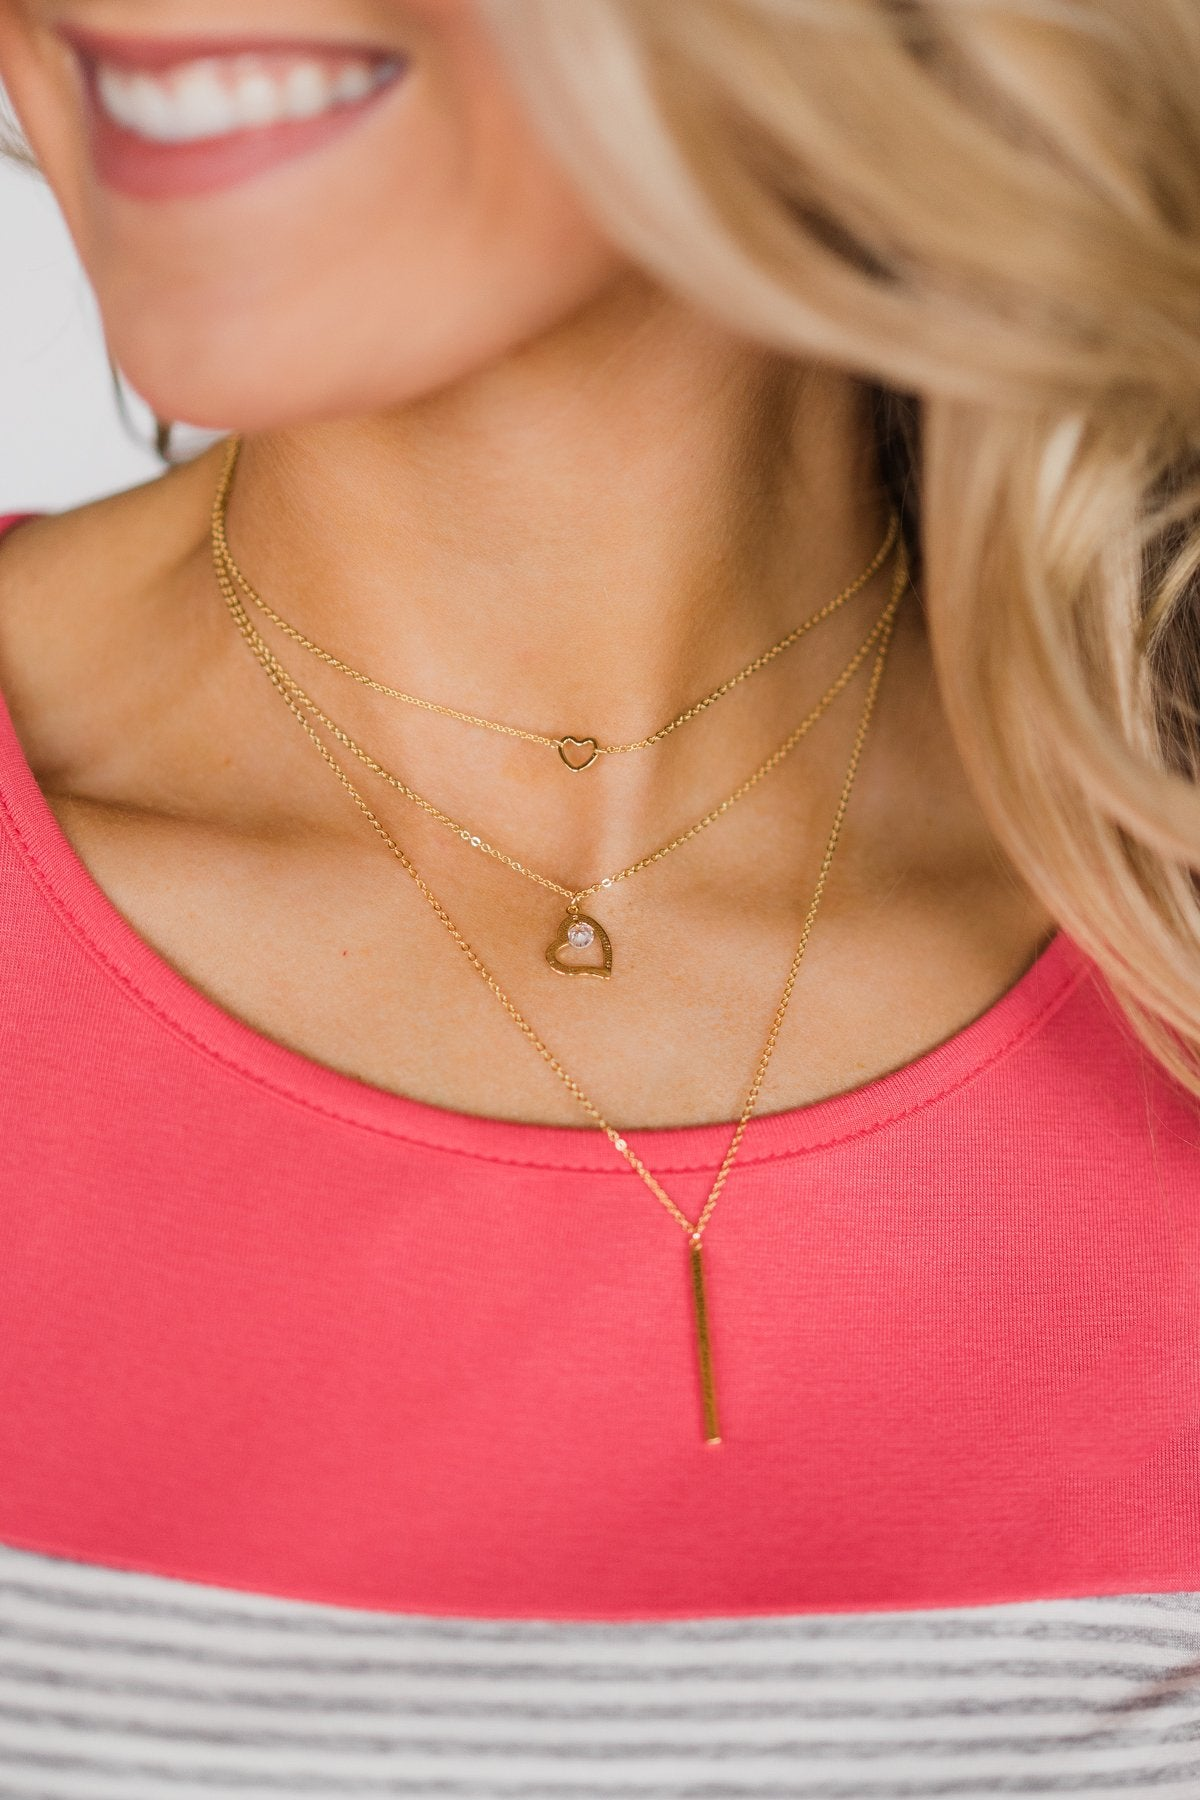 3 Tier Heart Necklace - Gold